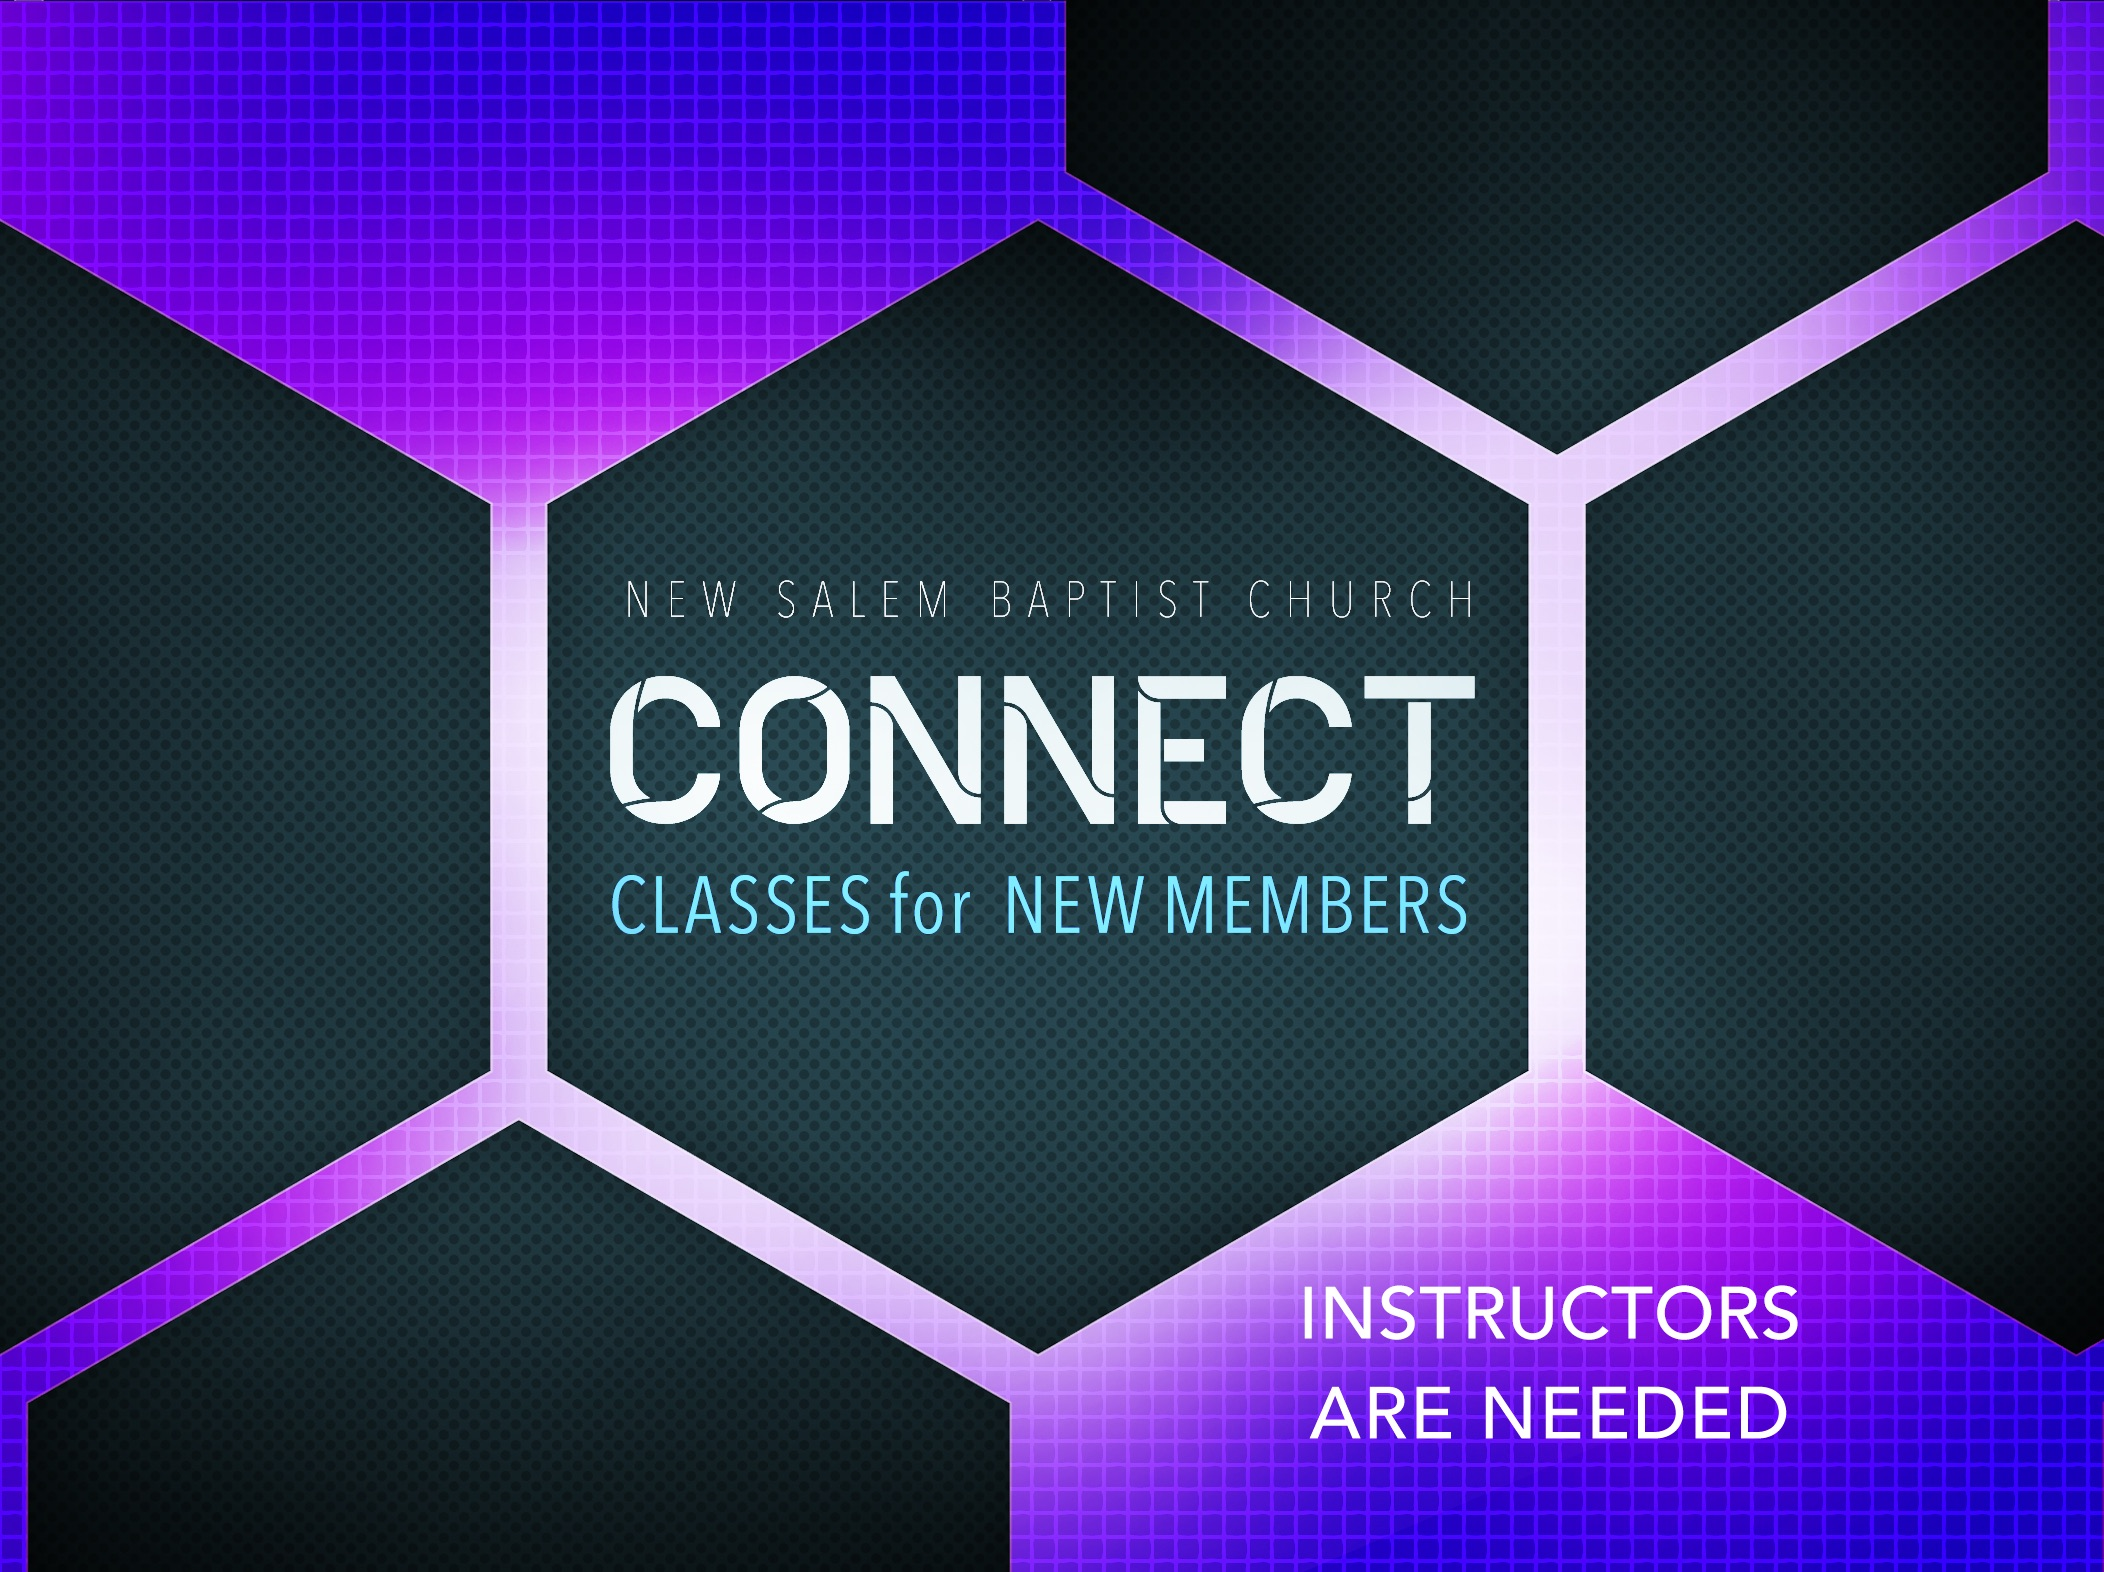 Connect Class Instructors